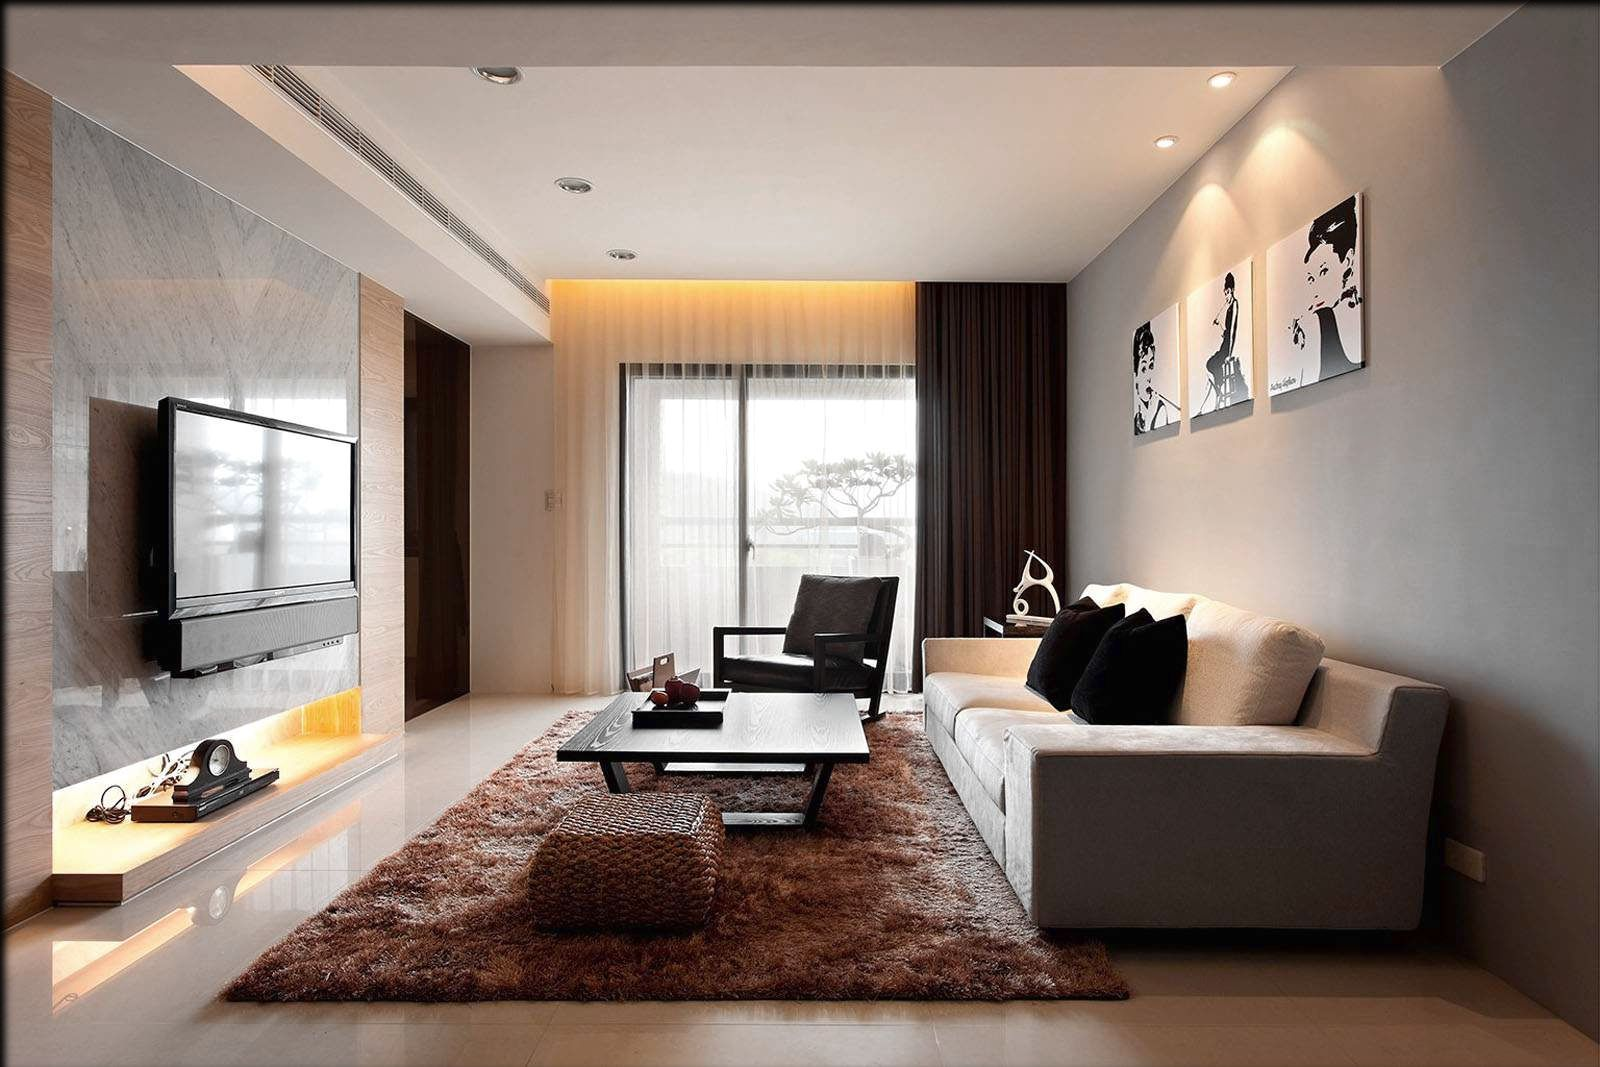 Simple Living Room Interior Design Ideas Wall Mounted Lights For Small House In India Conception De La